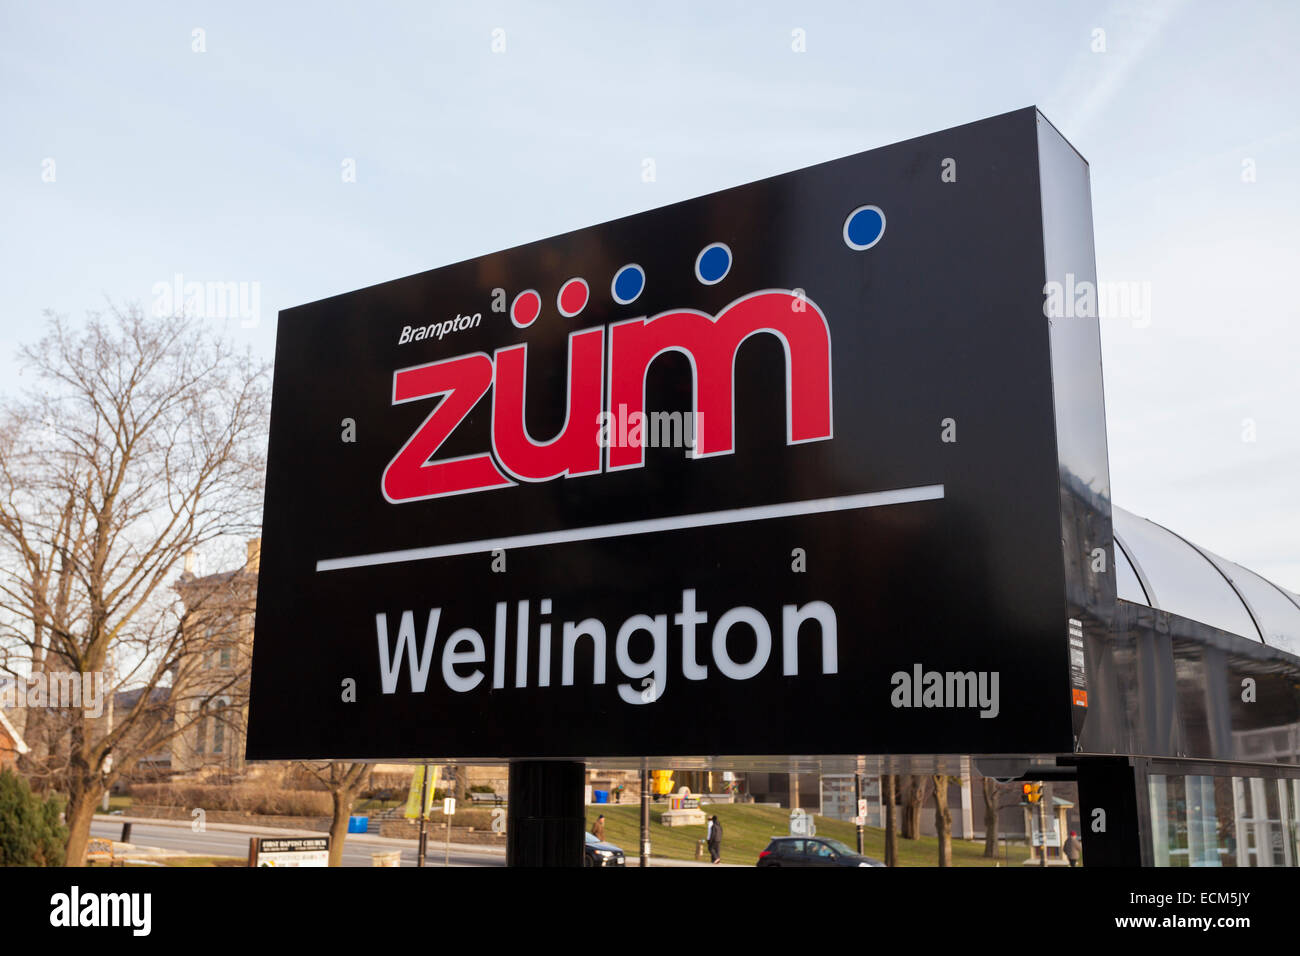 A sign for a Züm rapid transit bus stop in downtown Brampton, Ontario, Canada. - Stock Image